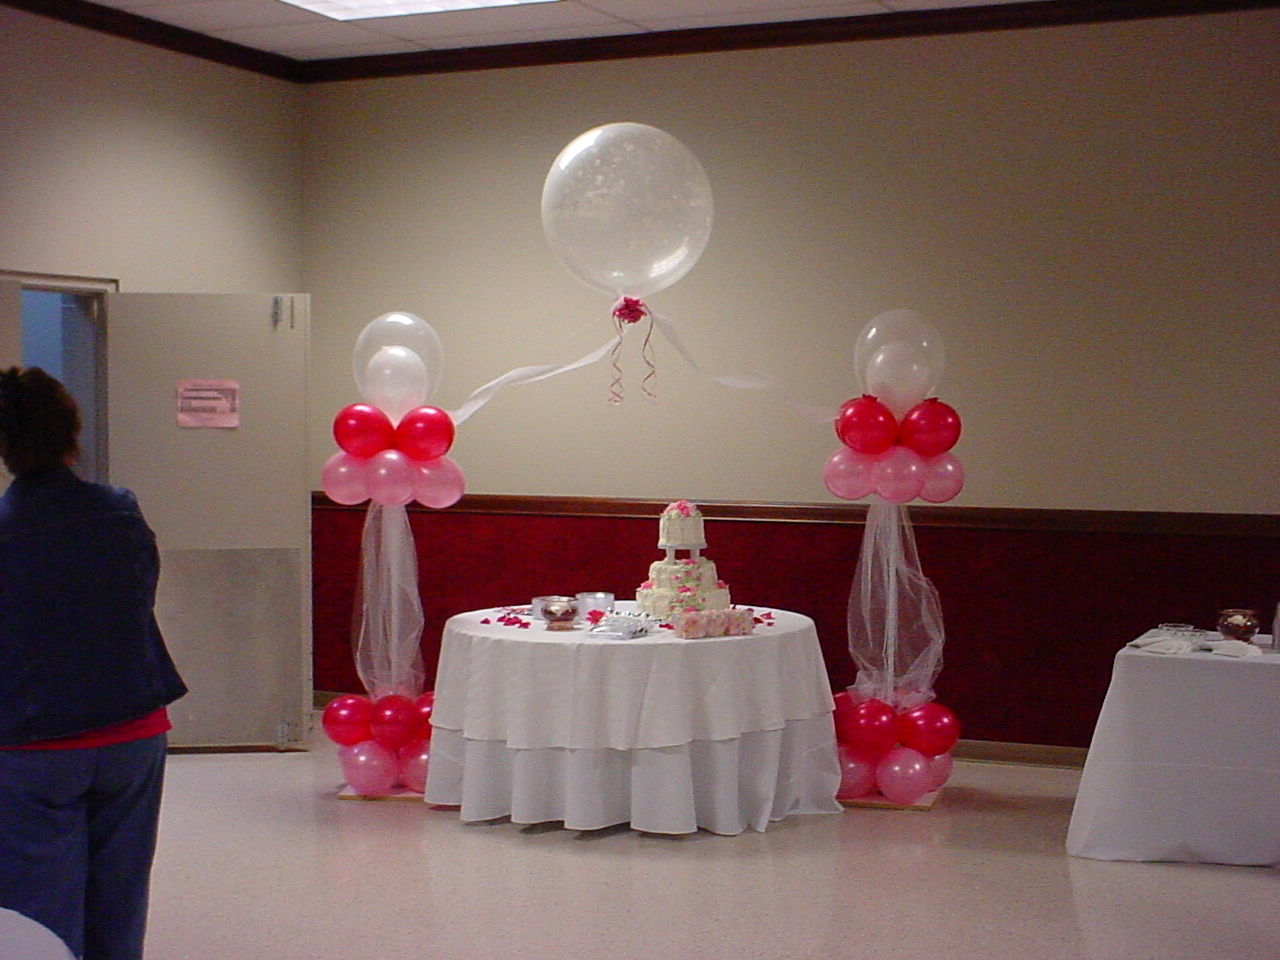 Balloon designs pictures balloon decor for Balloon decoration images party